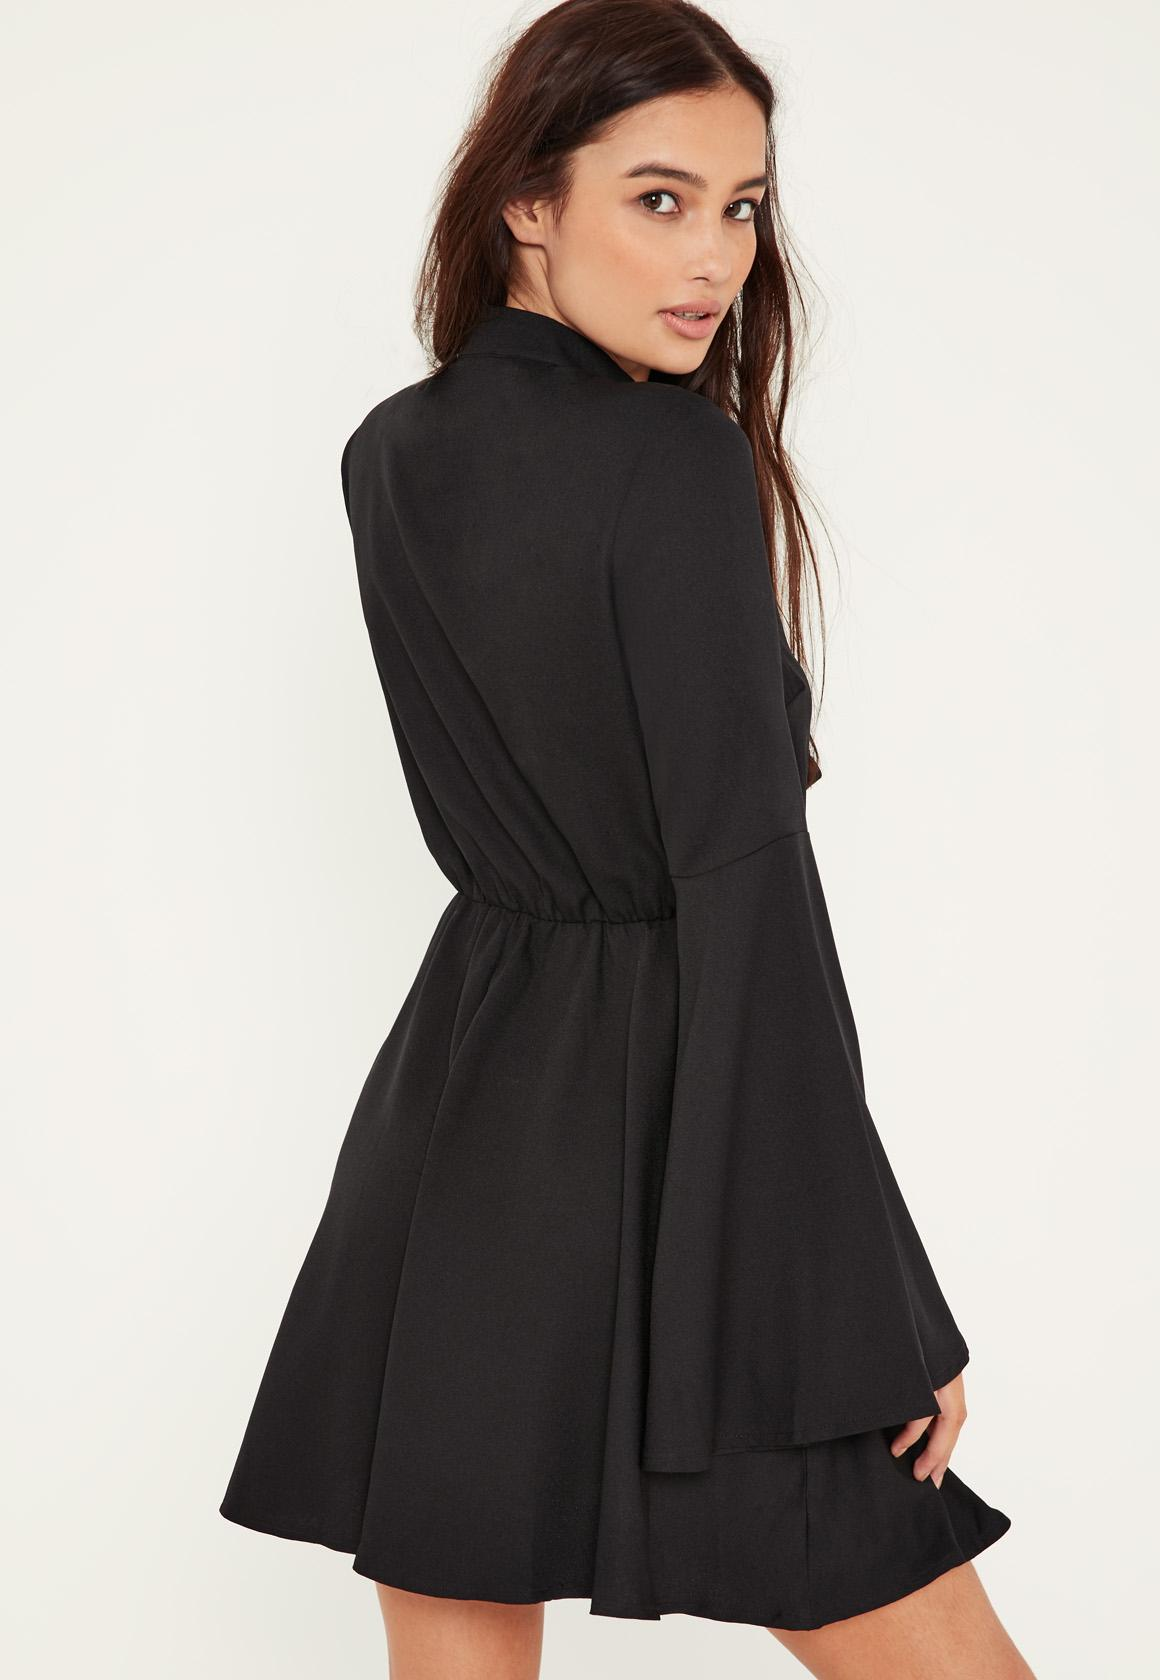 Black Flared Sleeve Tie Front Skater Dress